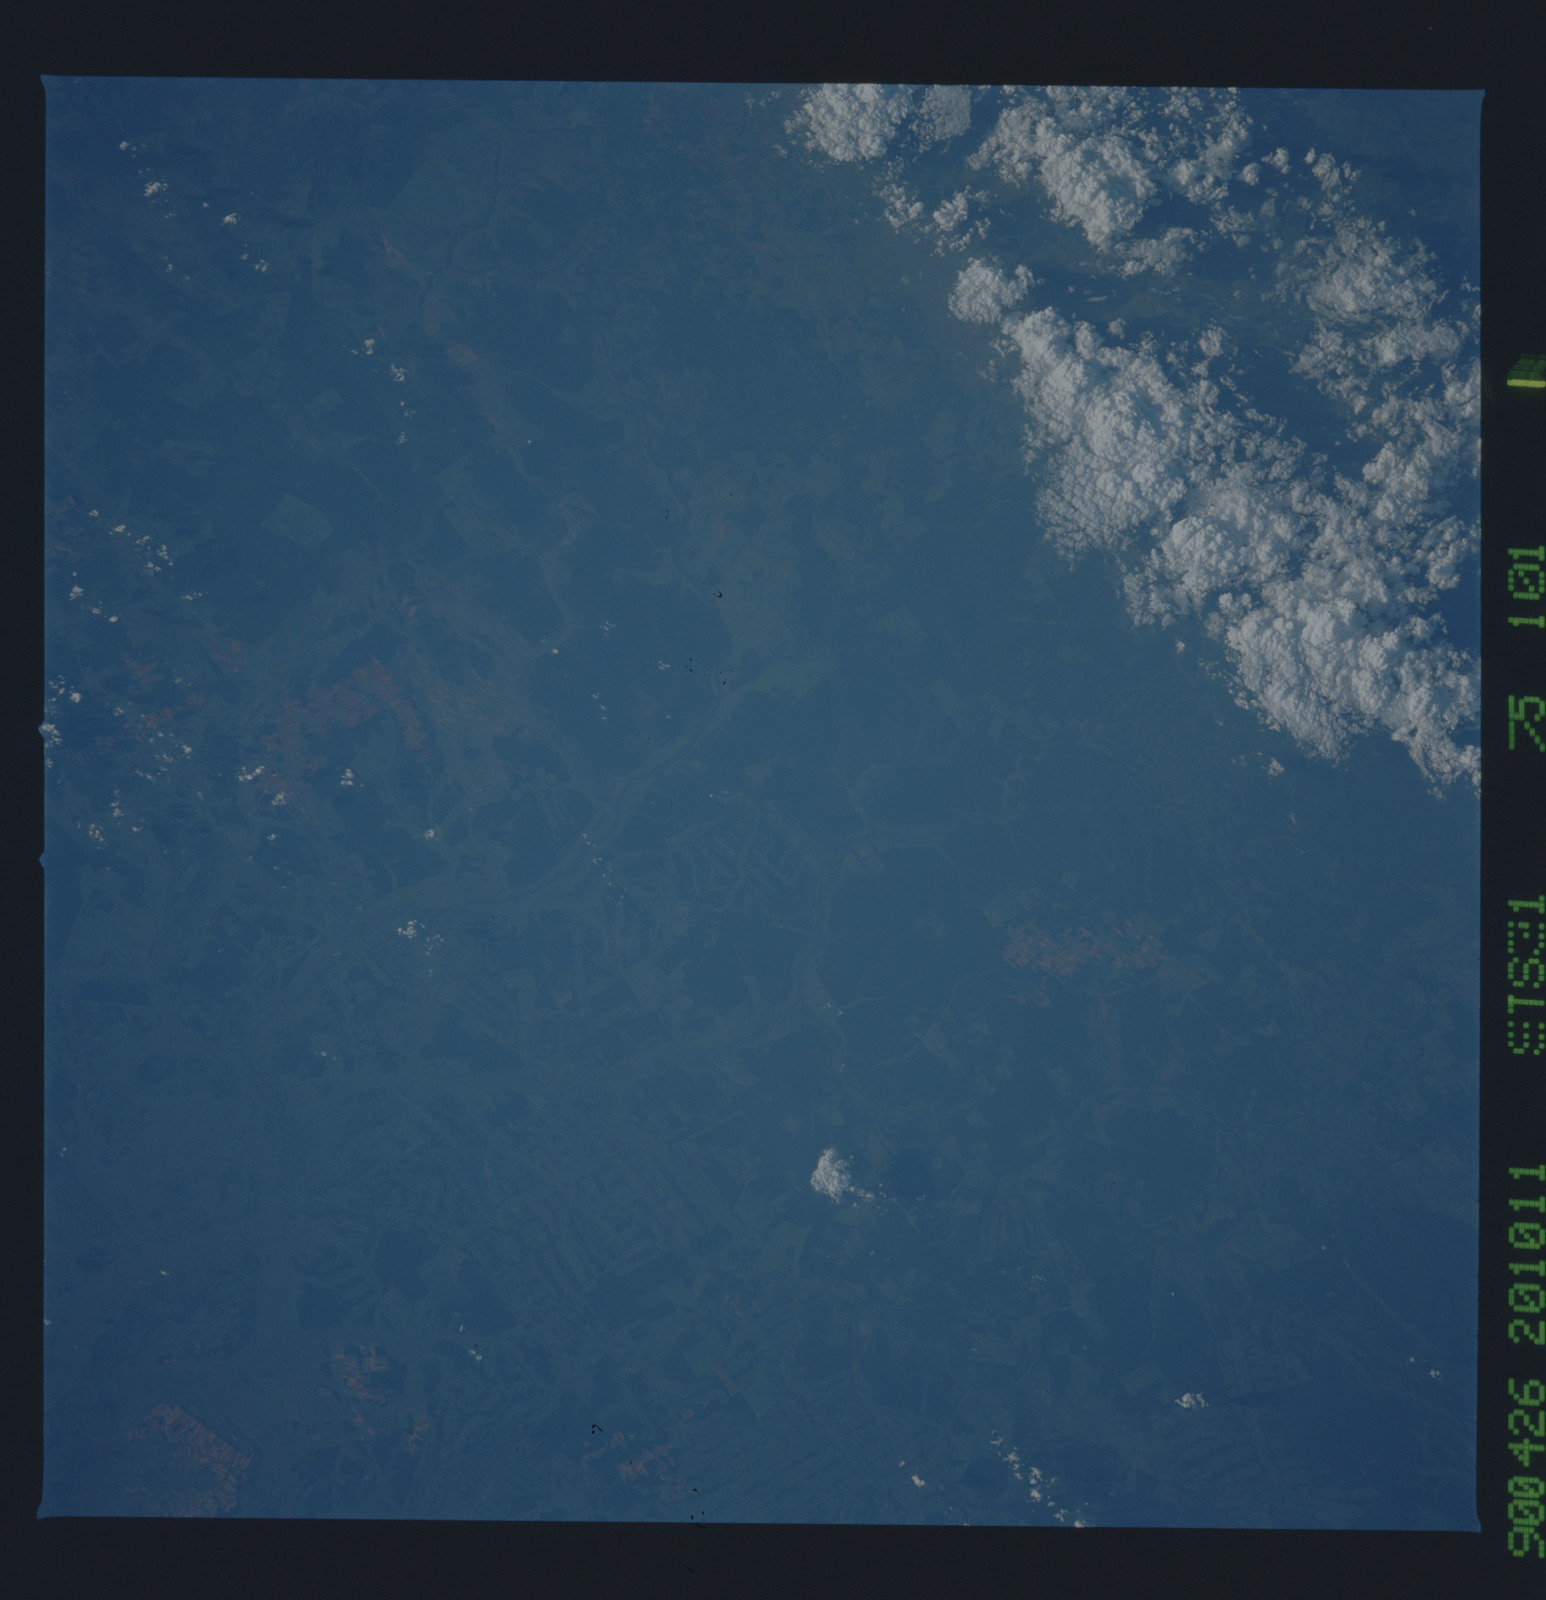 S31-75-101 - STS-031 - STS-31 earth observations